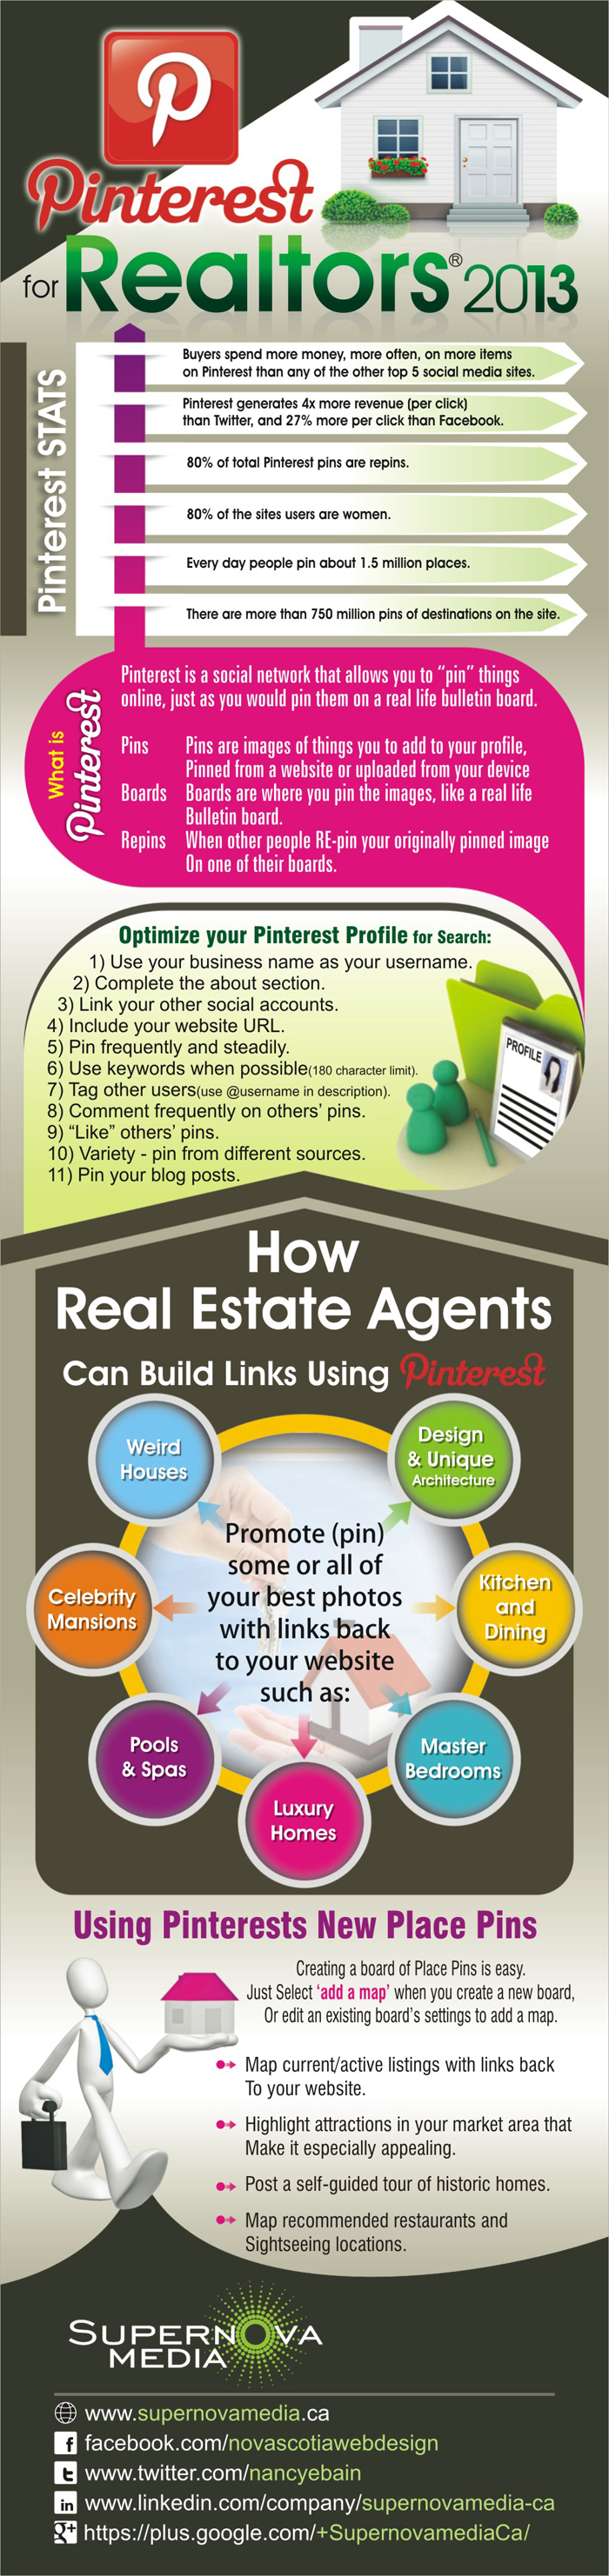 how to follow up email a real esstate agent